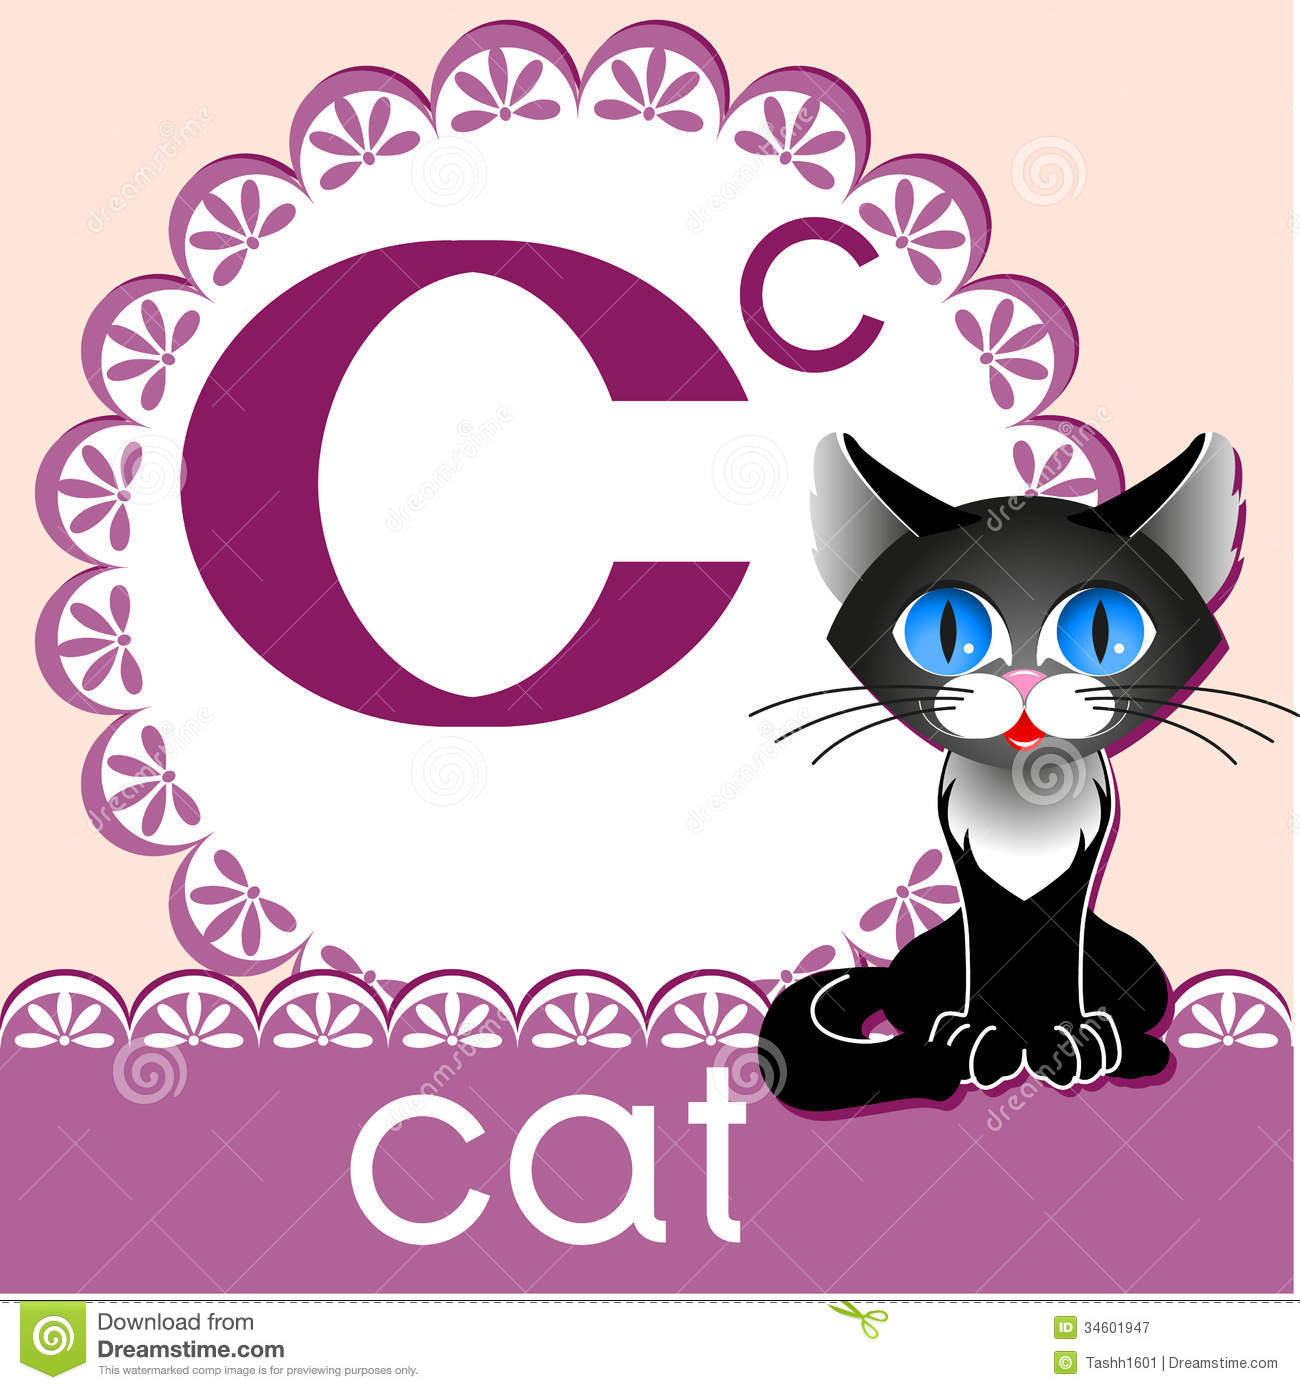 Alphabet C Royalty Free Stock Photography - Image: 34601947